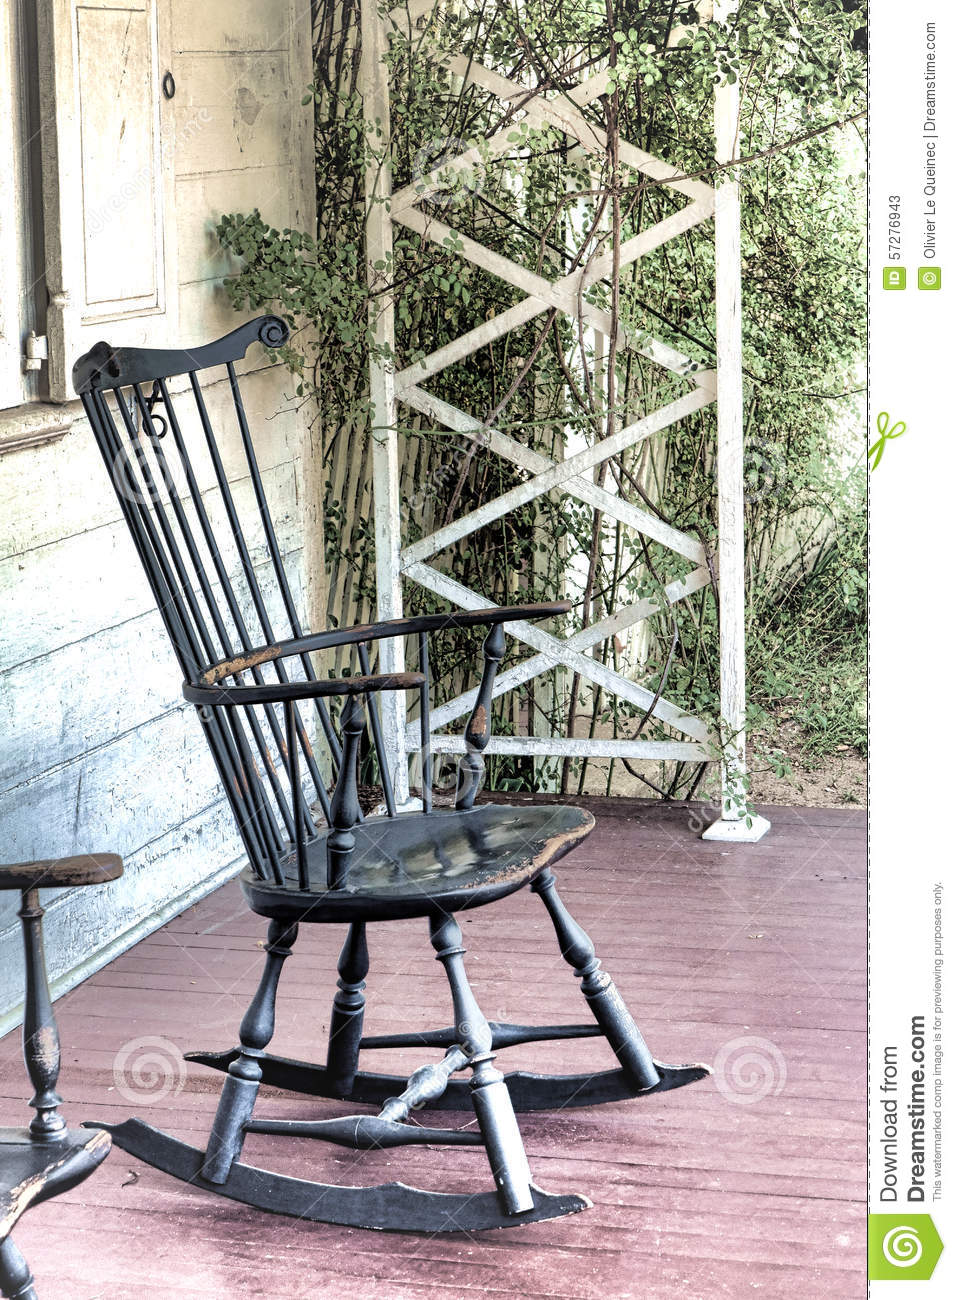 Antique porch rocking chairs - The Old Blue Rocking Chair